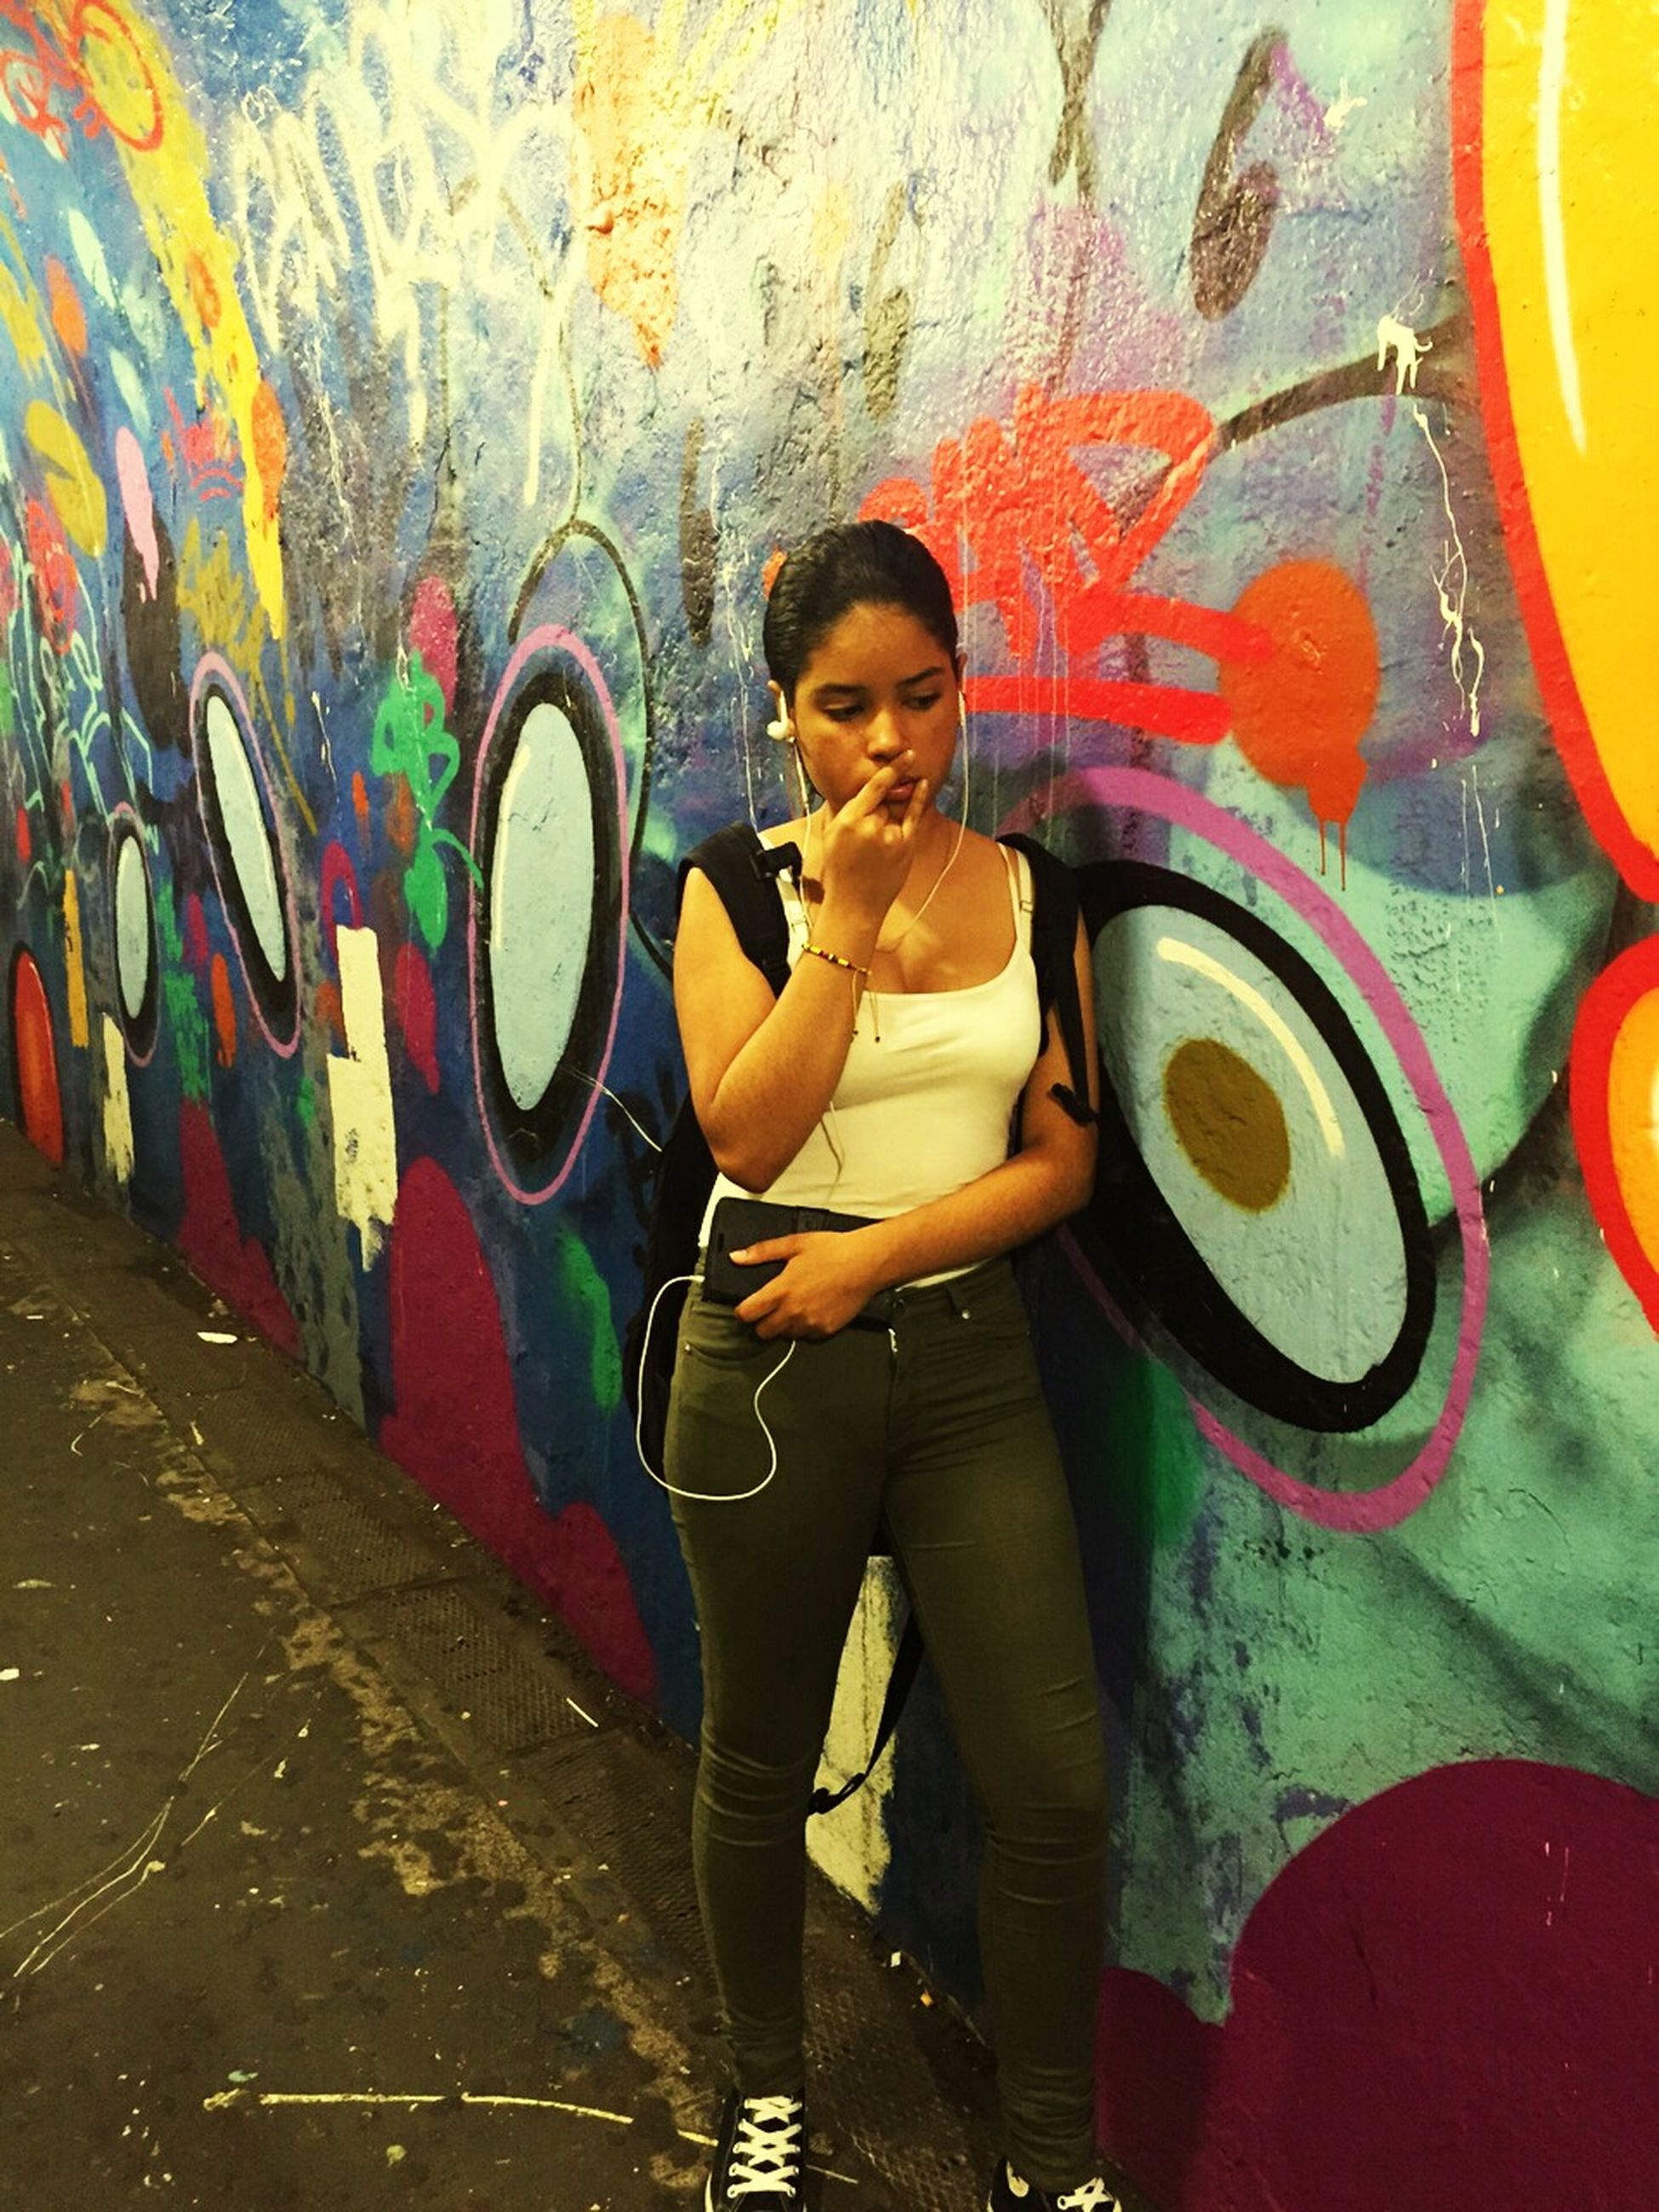 lifestyles, graffiti, young adult, leisure activity, casual clothing, looking at camera, person, portrait, front view, young women, happiness, standing, art, wall - building feature, creativity, smiling, full length